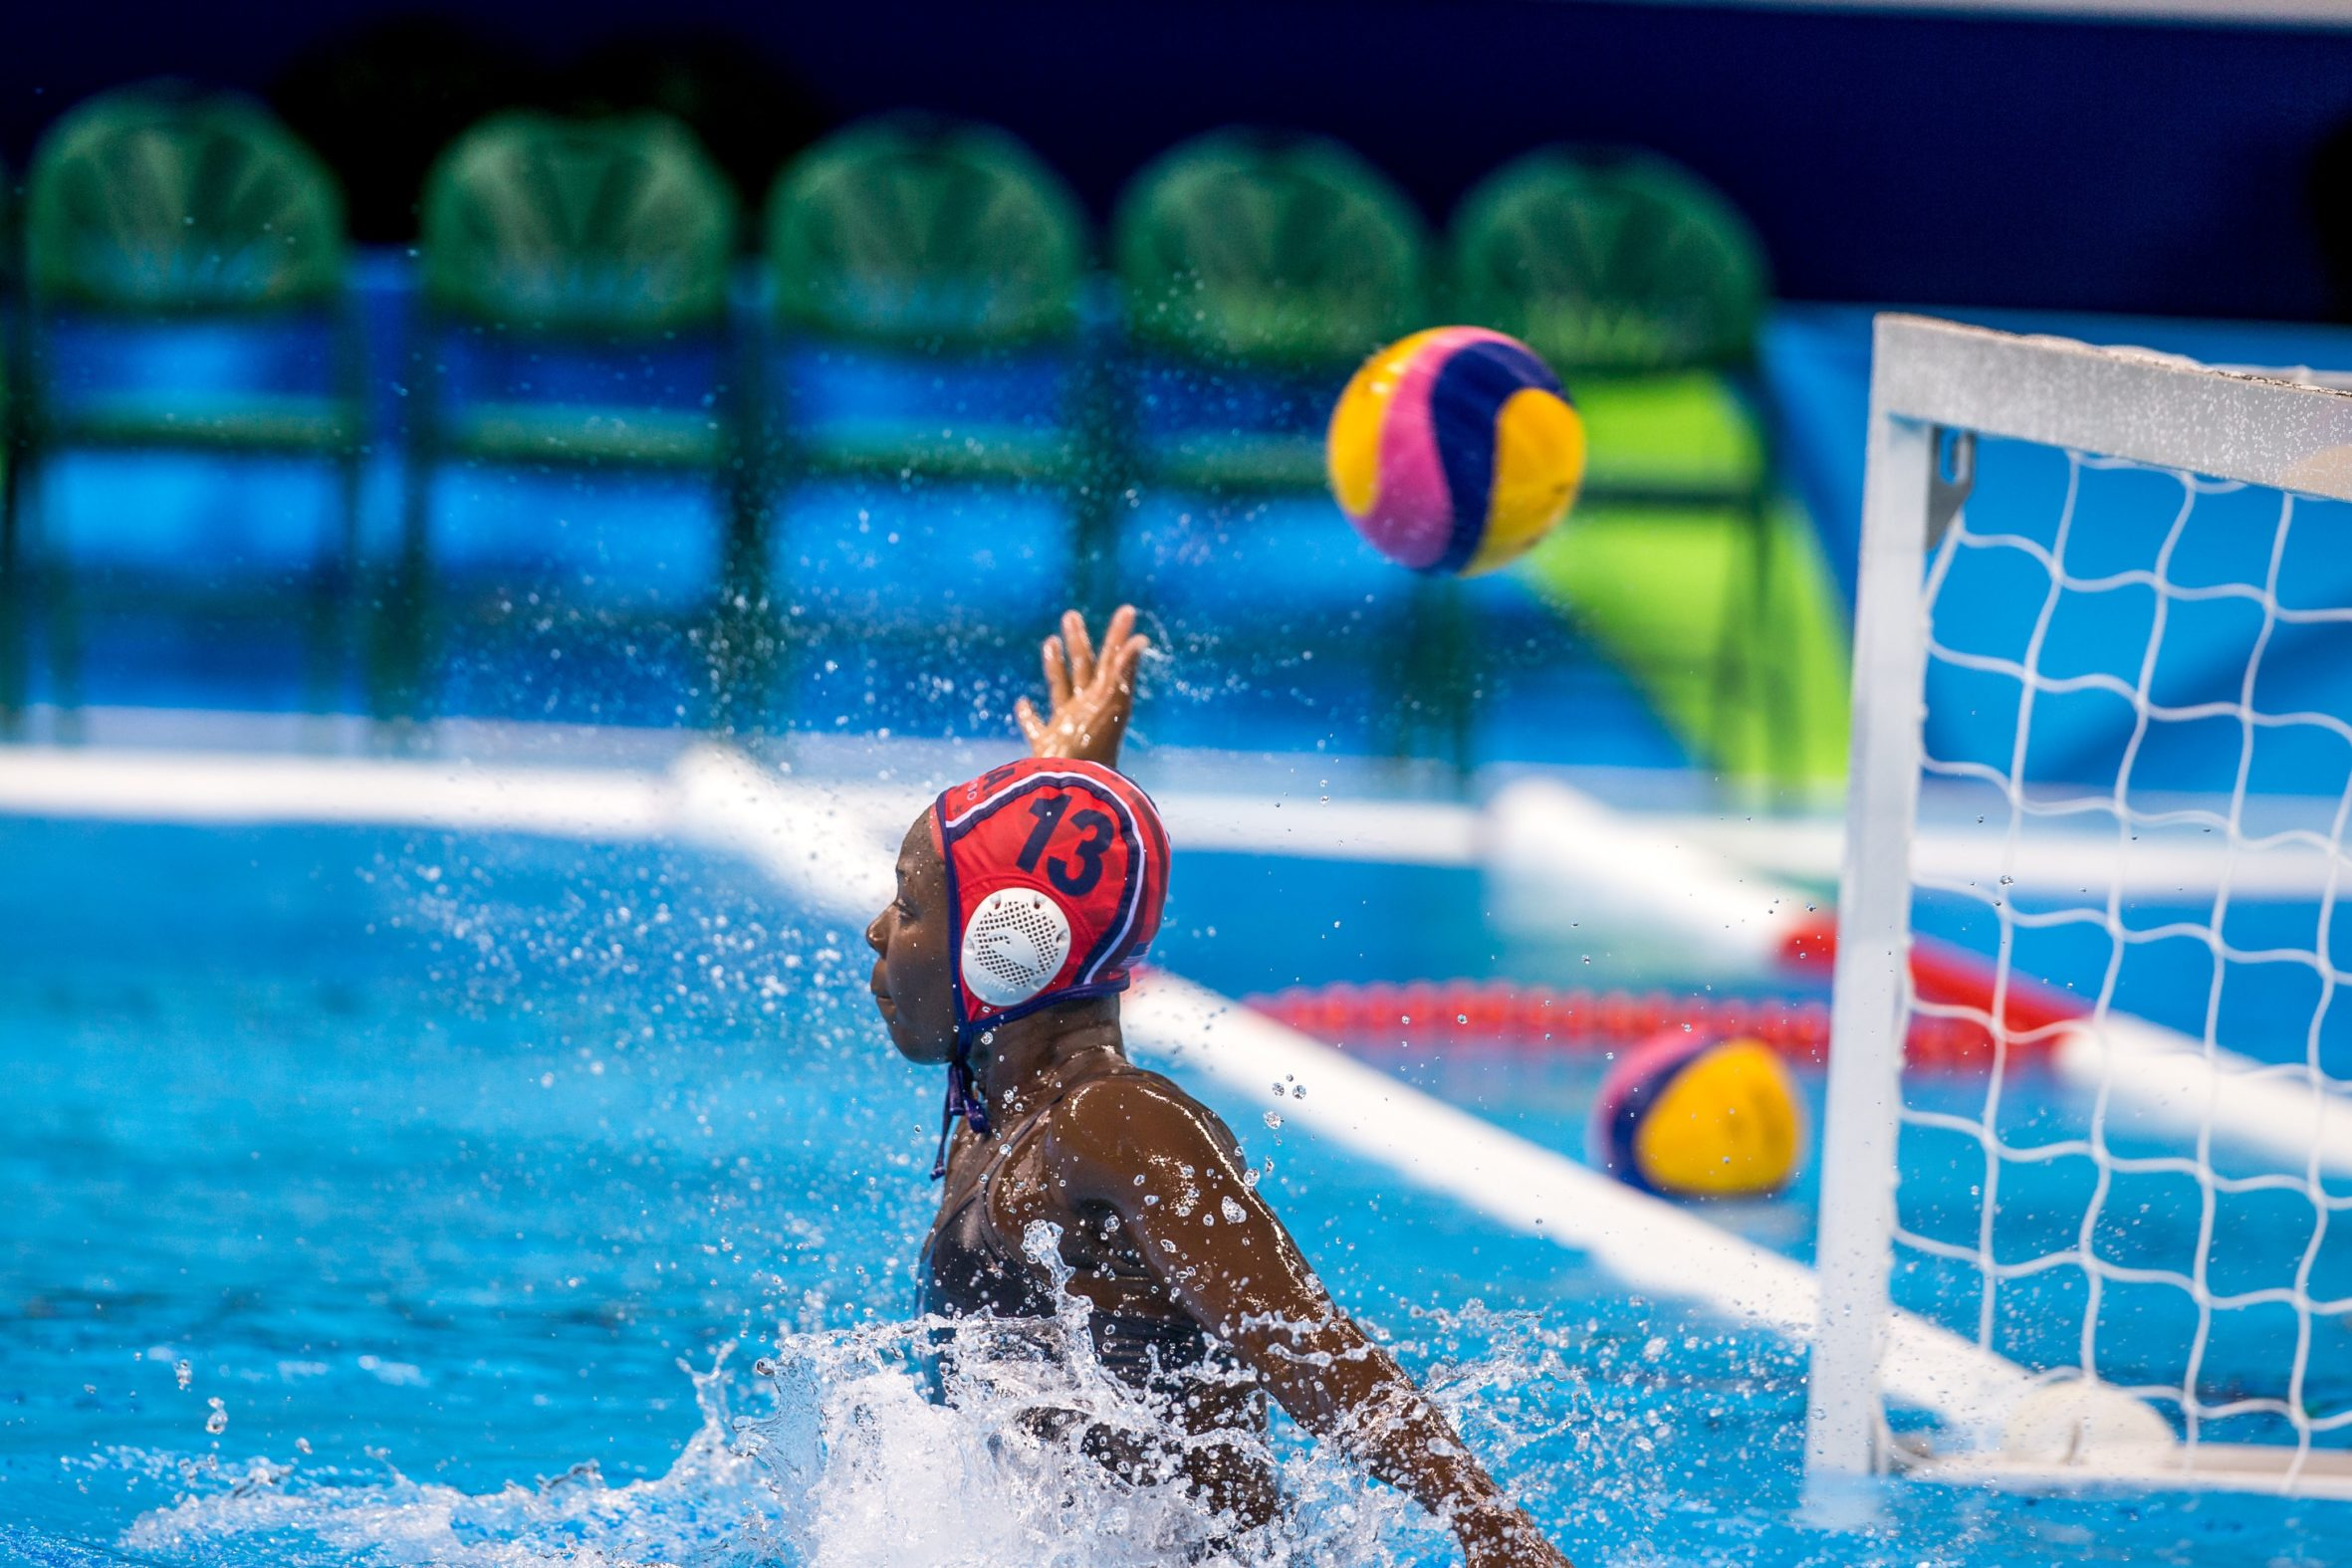 OKT waterpolo speelsters gaan bubbel in